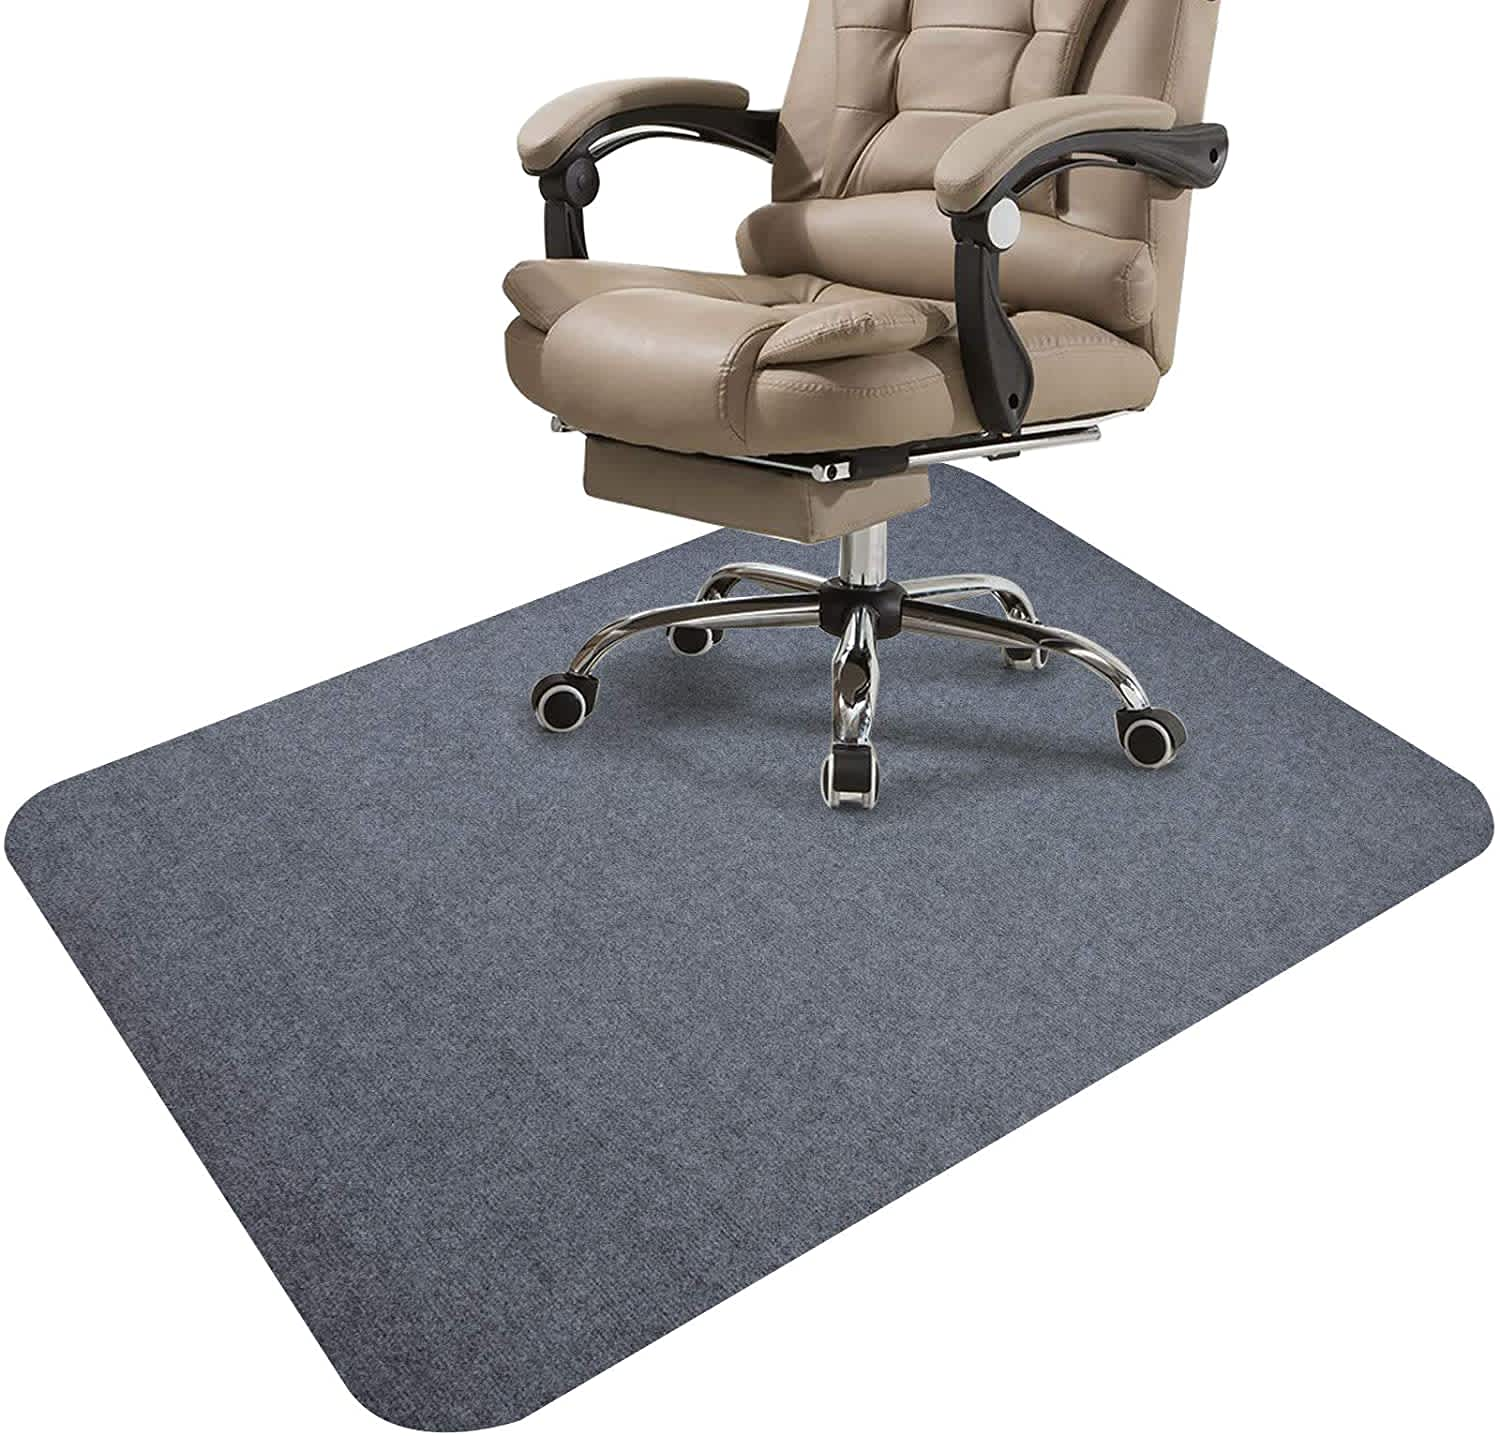 Placoot Chair Mat Floor Protector